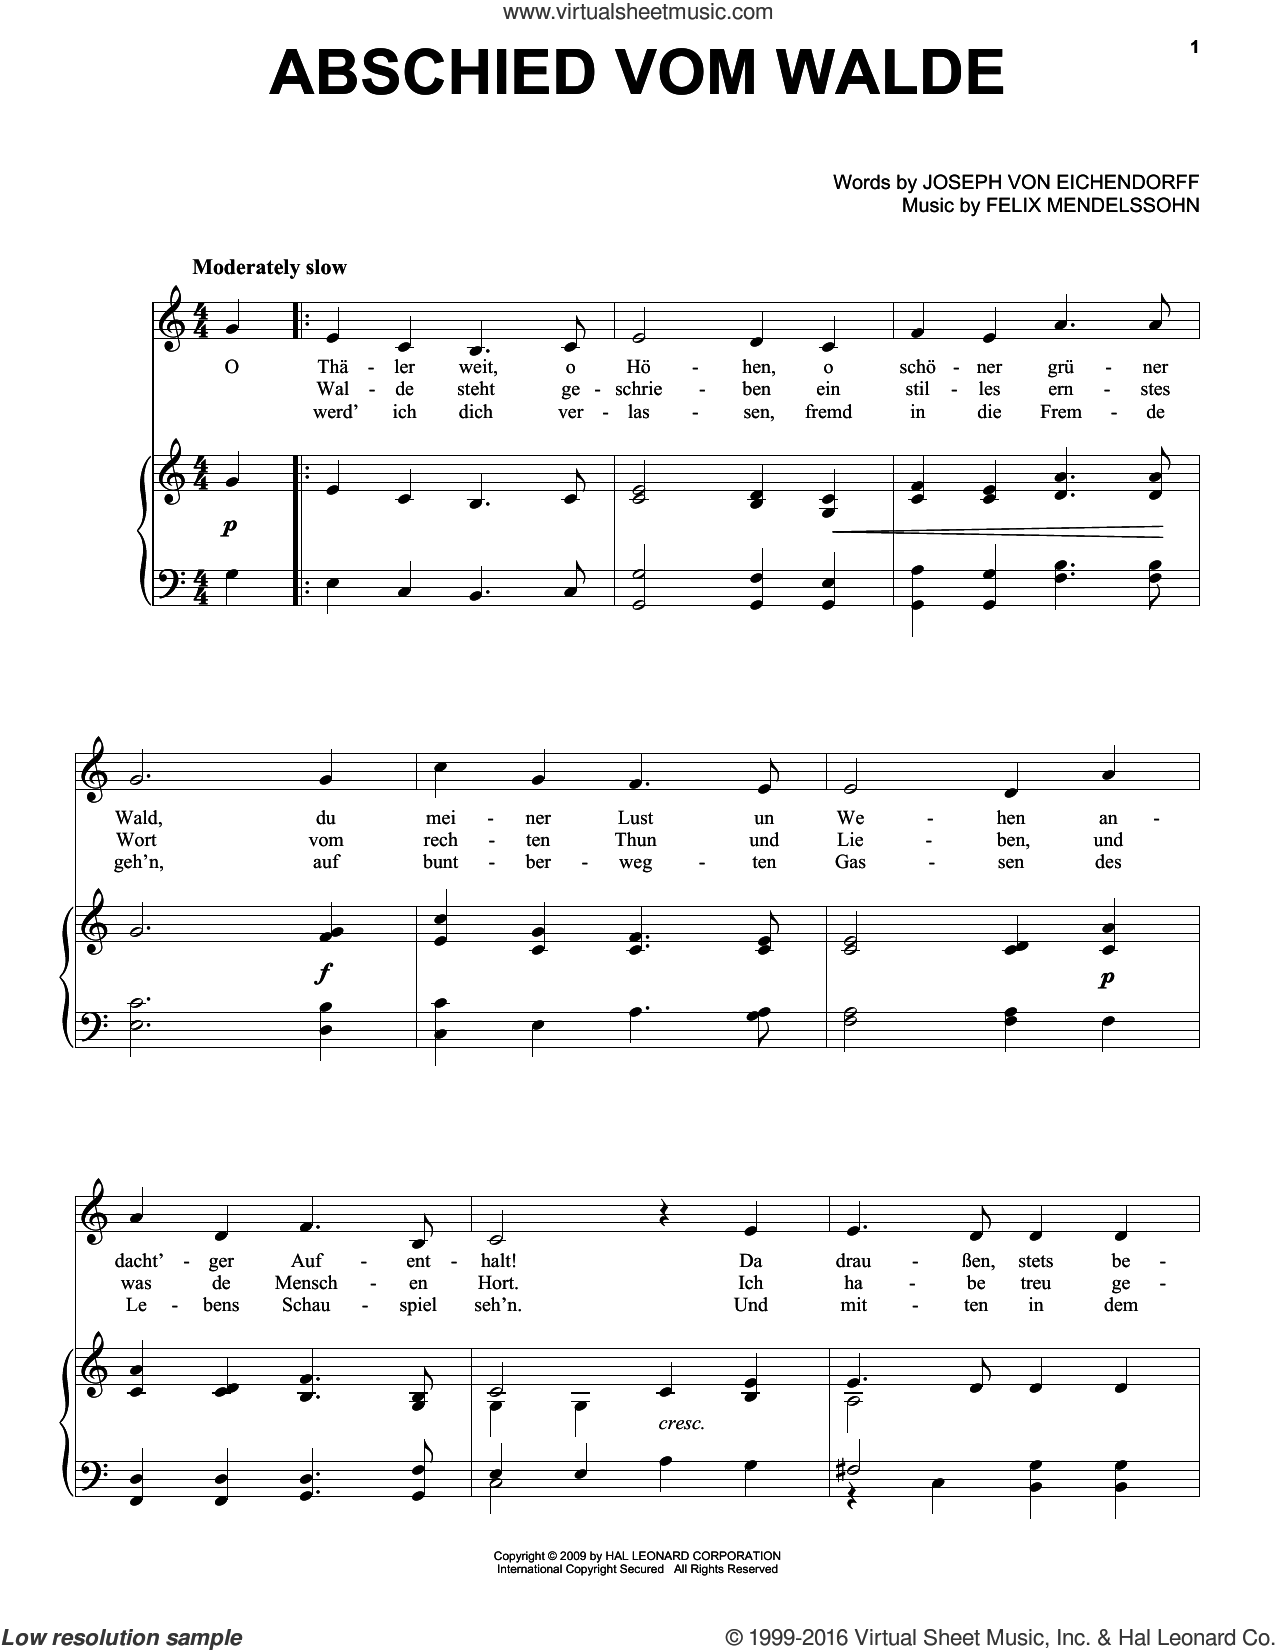 Abschied Vom Walde sheet music for voice, piano or guitar by Joseph von Eichendorff and Felix Mendelssohn-Bartholdy. Score Image Preview.